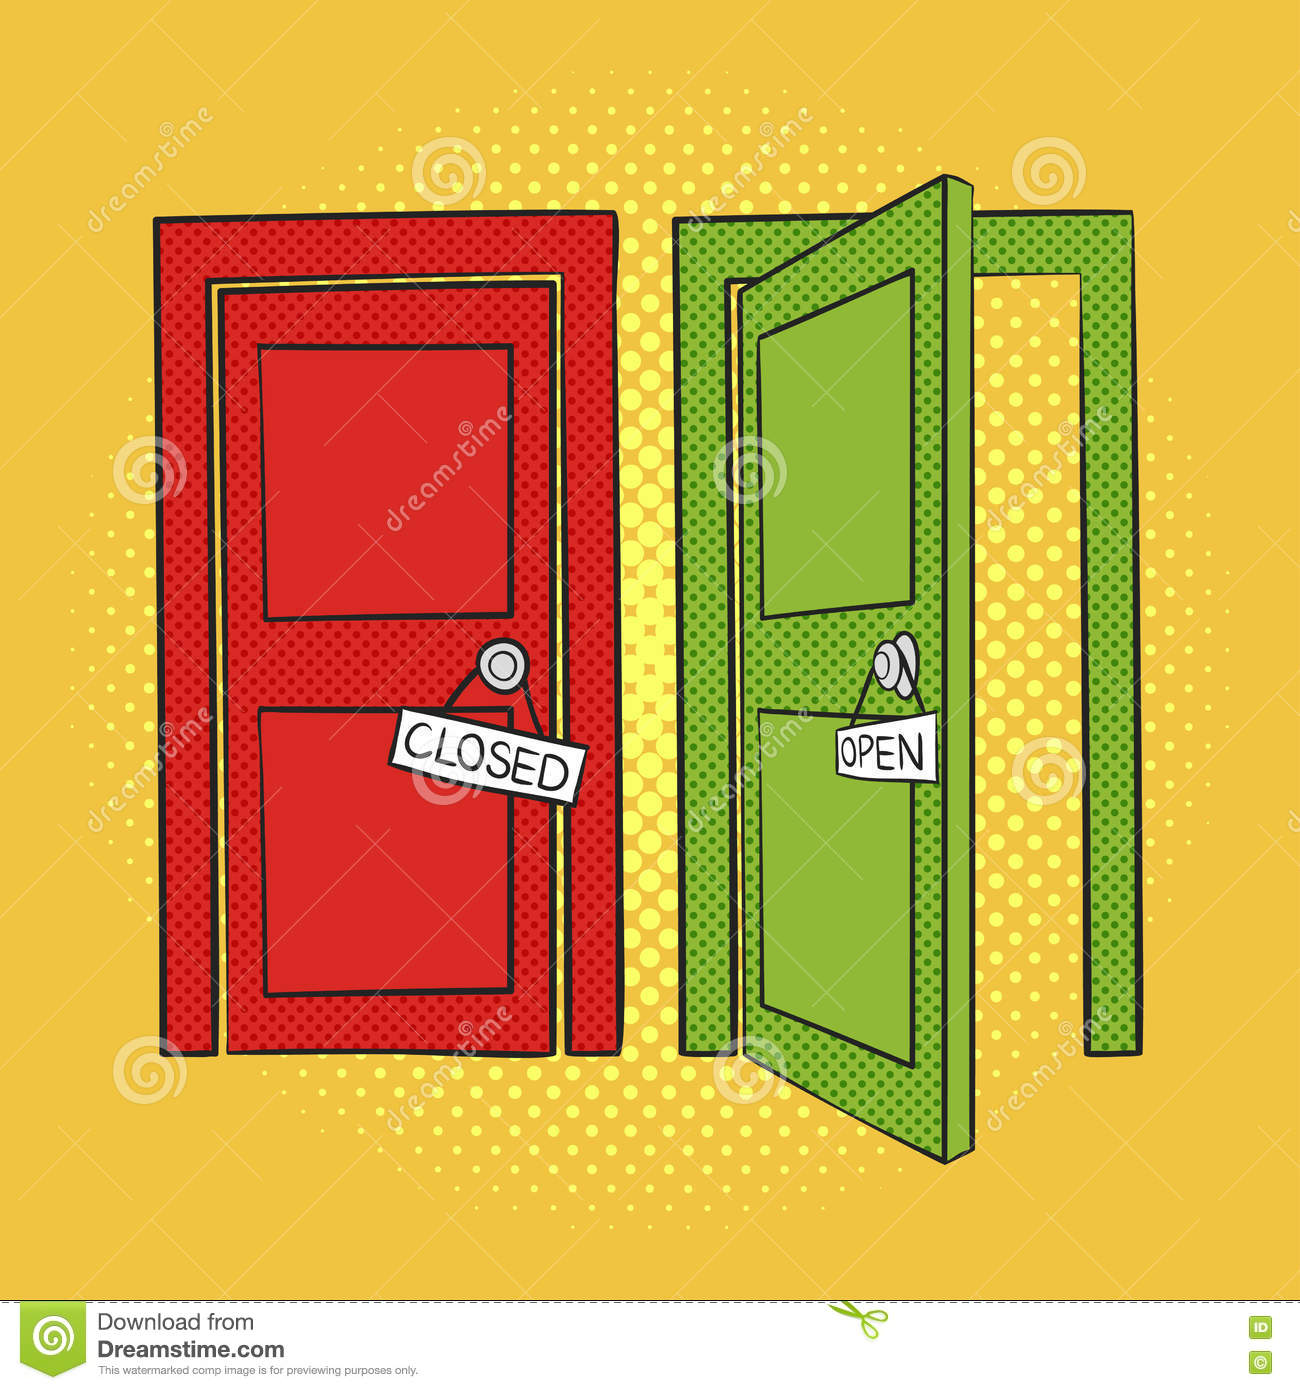 Open door closed door - Art Closed Door Doors Drawn Hand Illustration Open